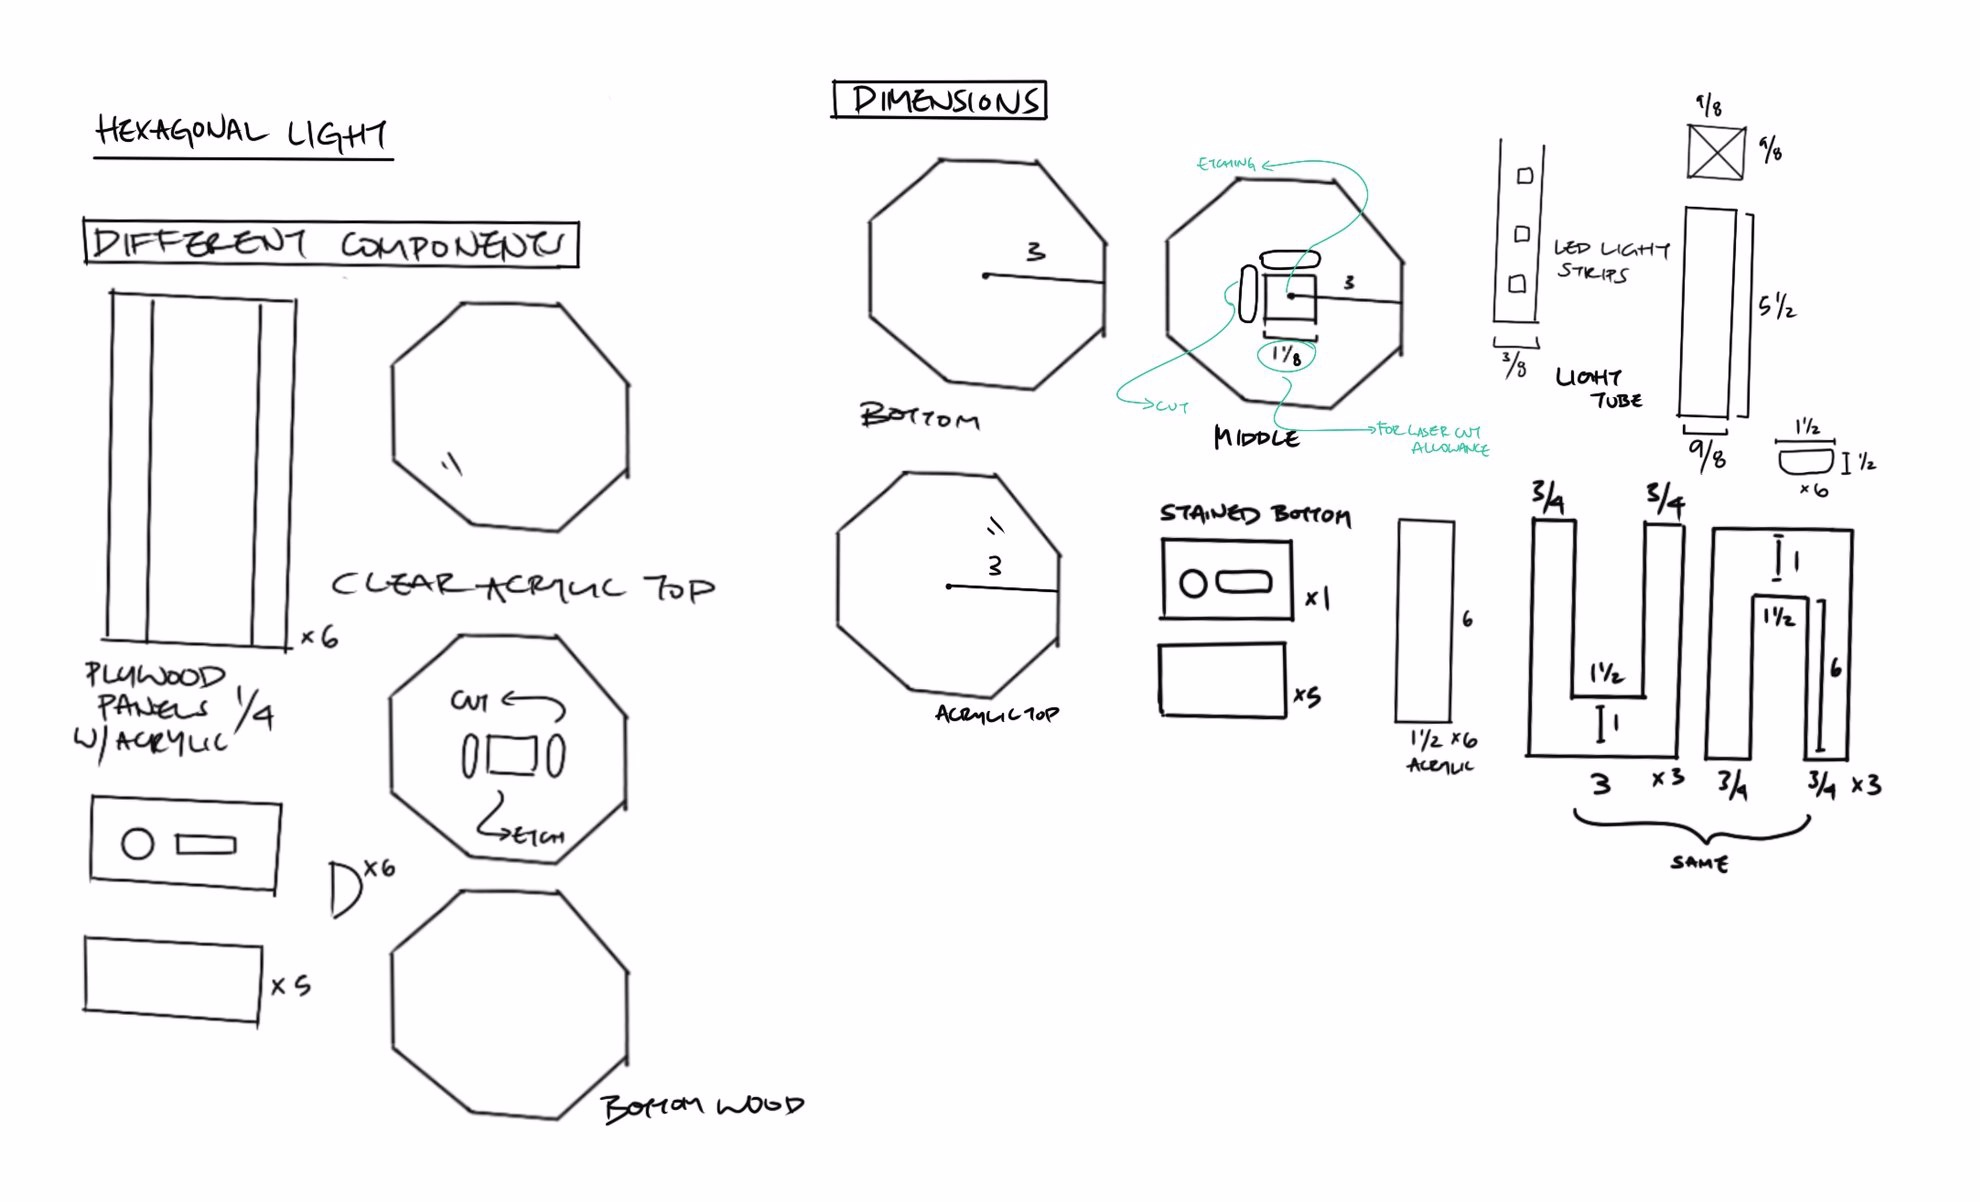 Sketching out dimensions and laser cut pieces of the lamp prior to beginning physical fabrication